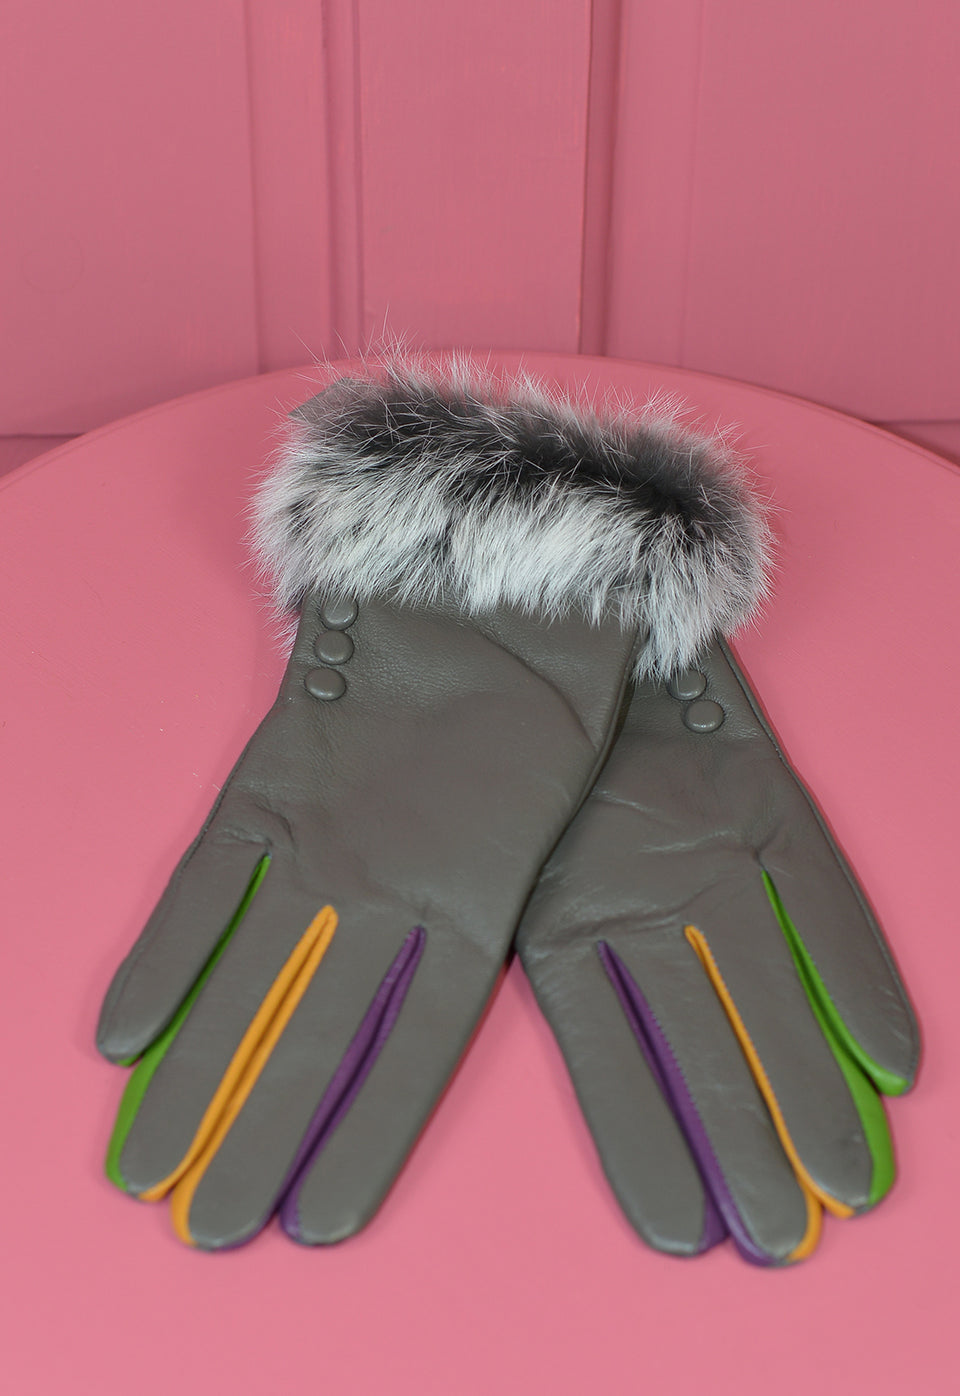 VERA TUCCI Leather 'Touch Screen' Gloves with Faux Four, Multi Colour. New with tags.